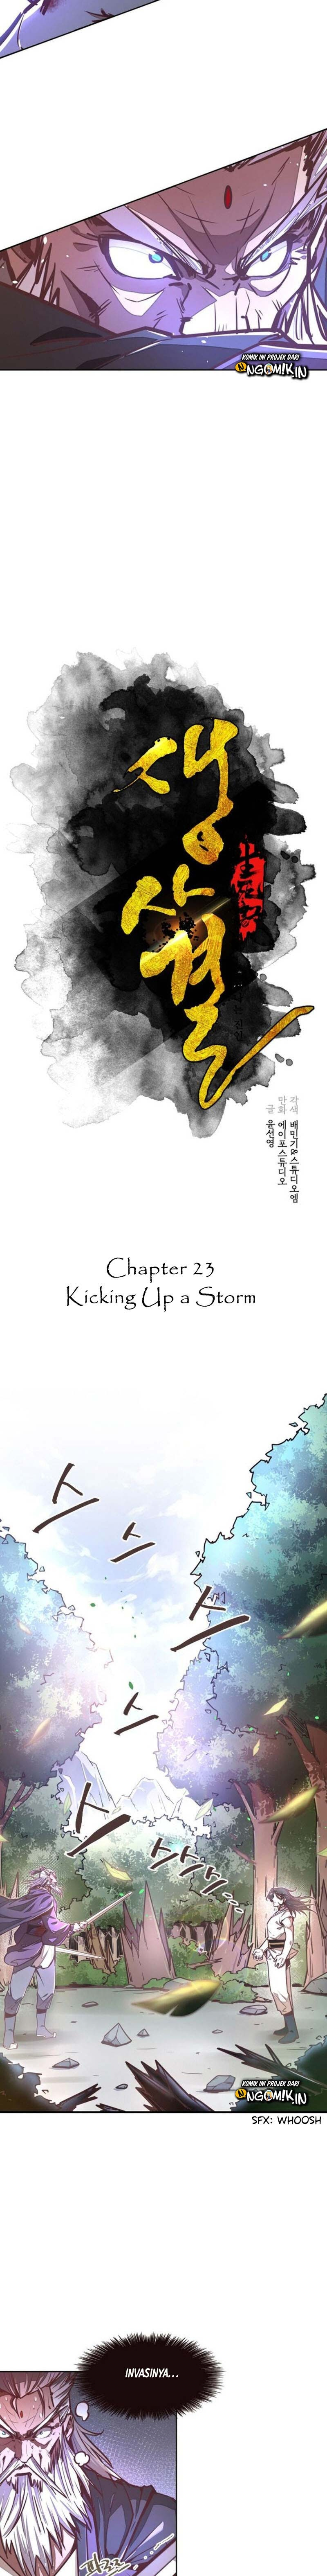 Life and Death: The Awakening Chapter 23